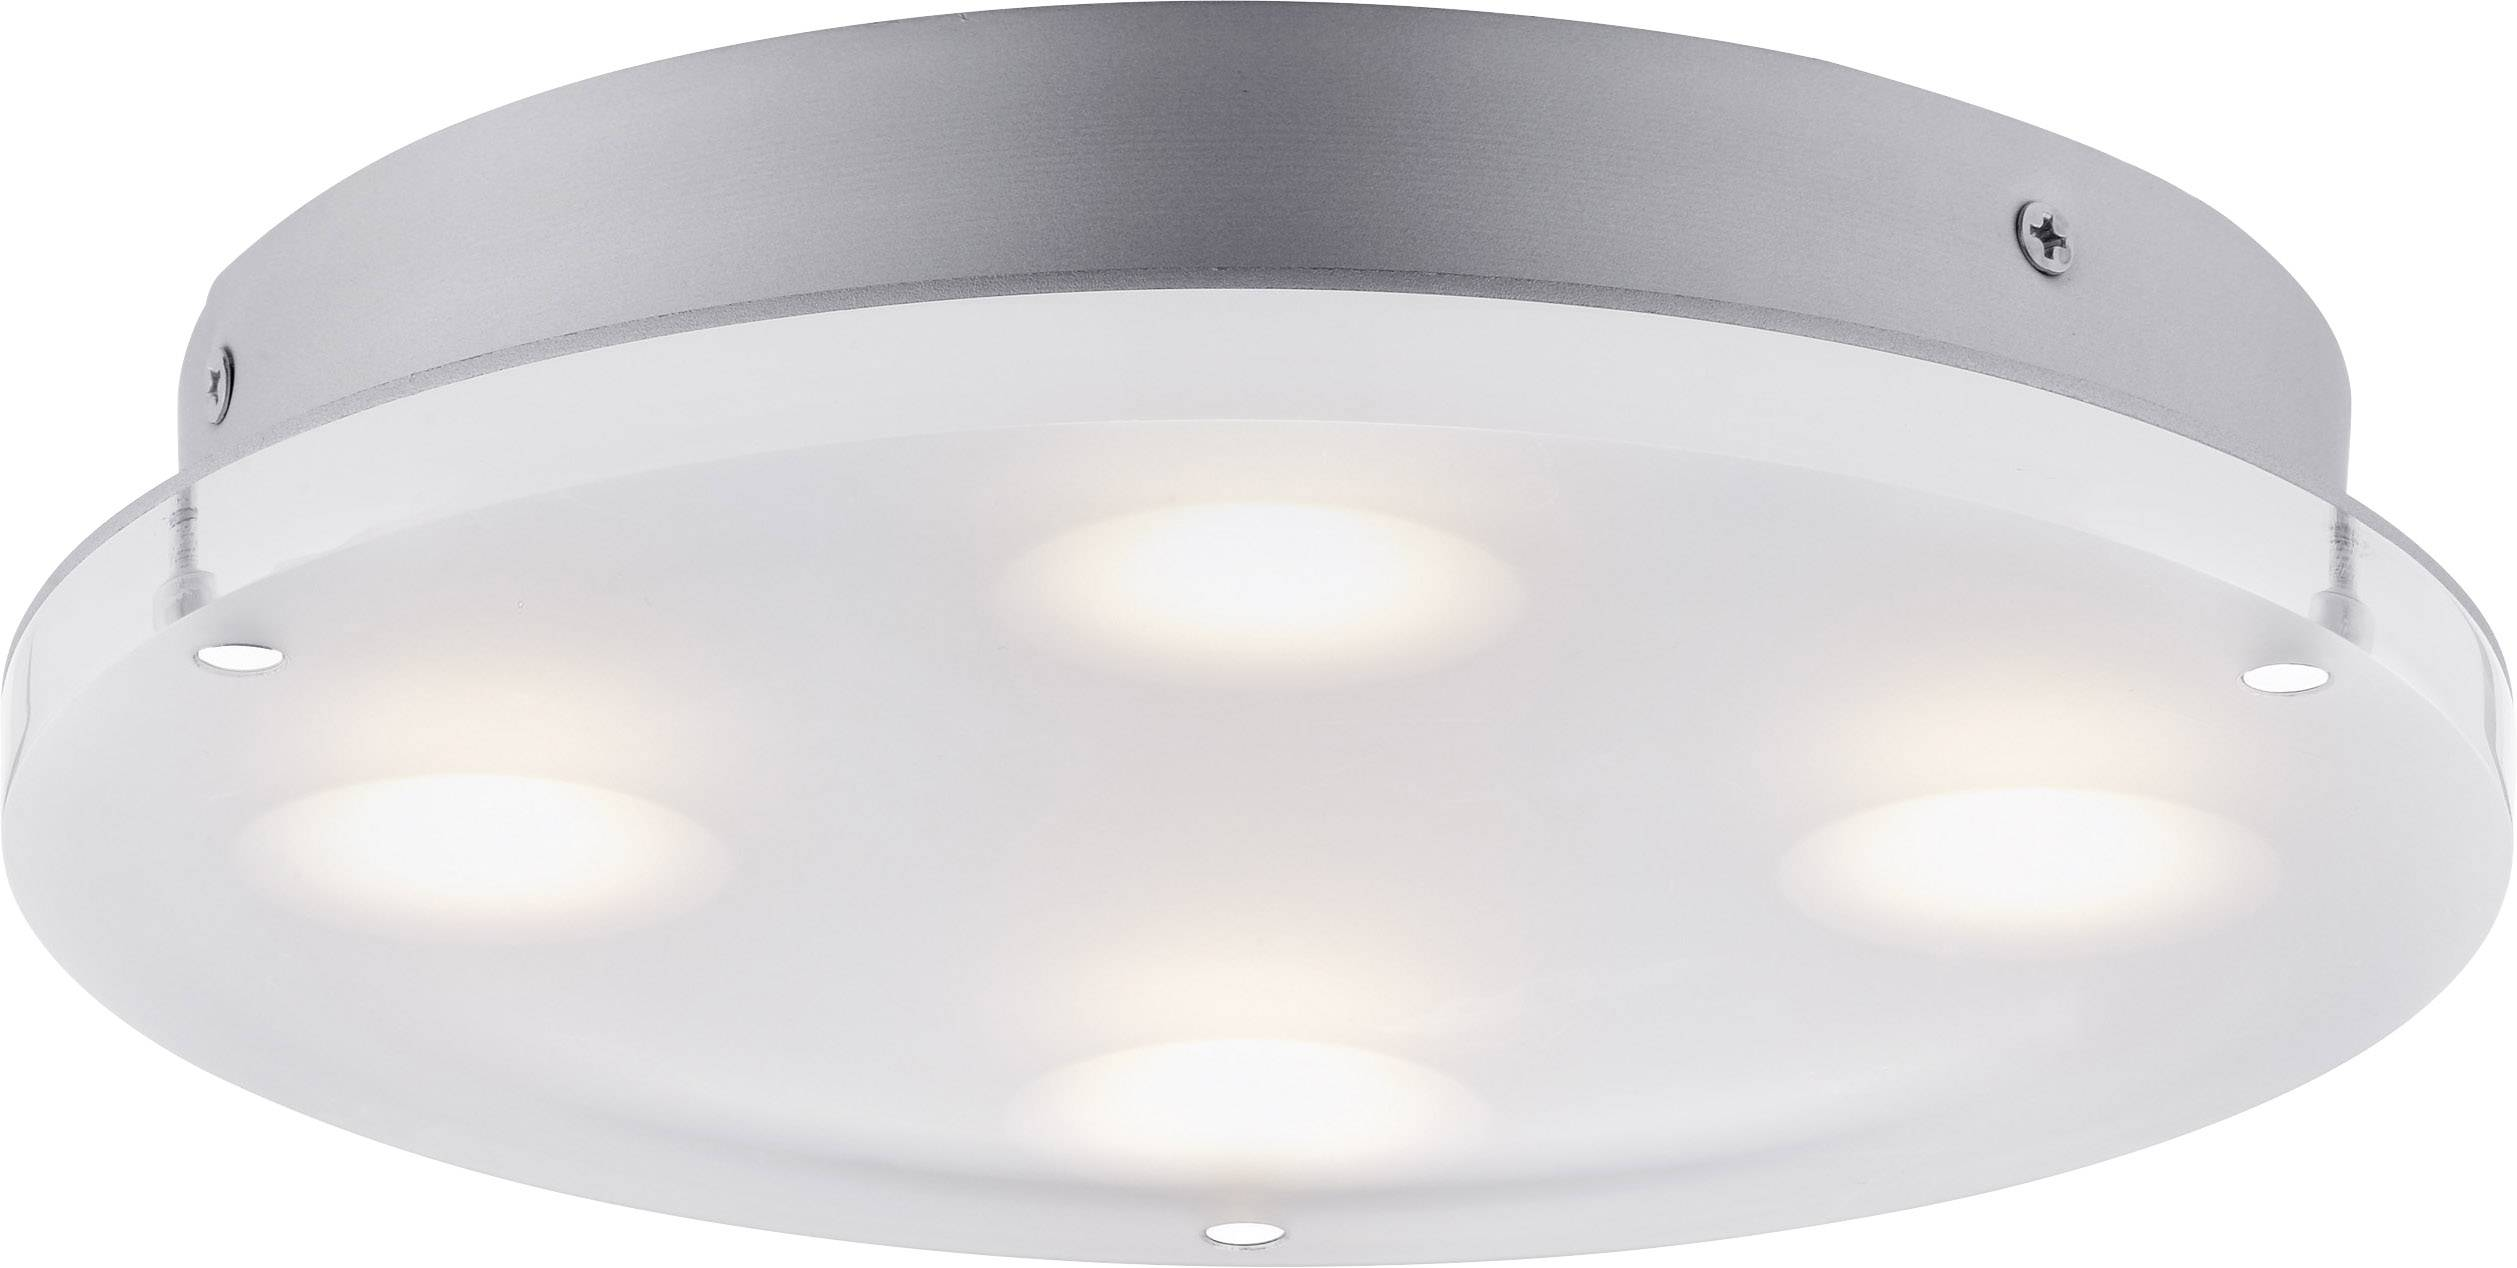 Bad Deckenleuchte Paulmann Led Bad Deckenleuchte Eek Led A E 18w 70509 Minor Satin